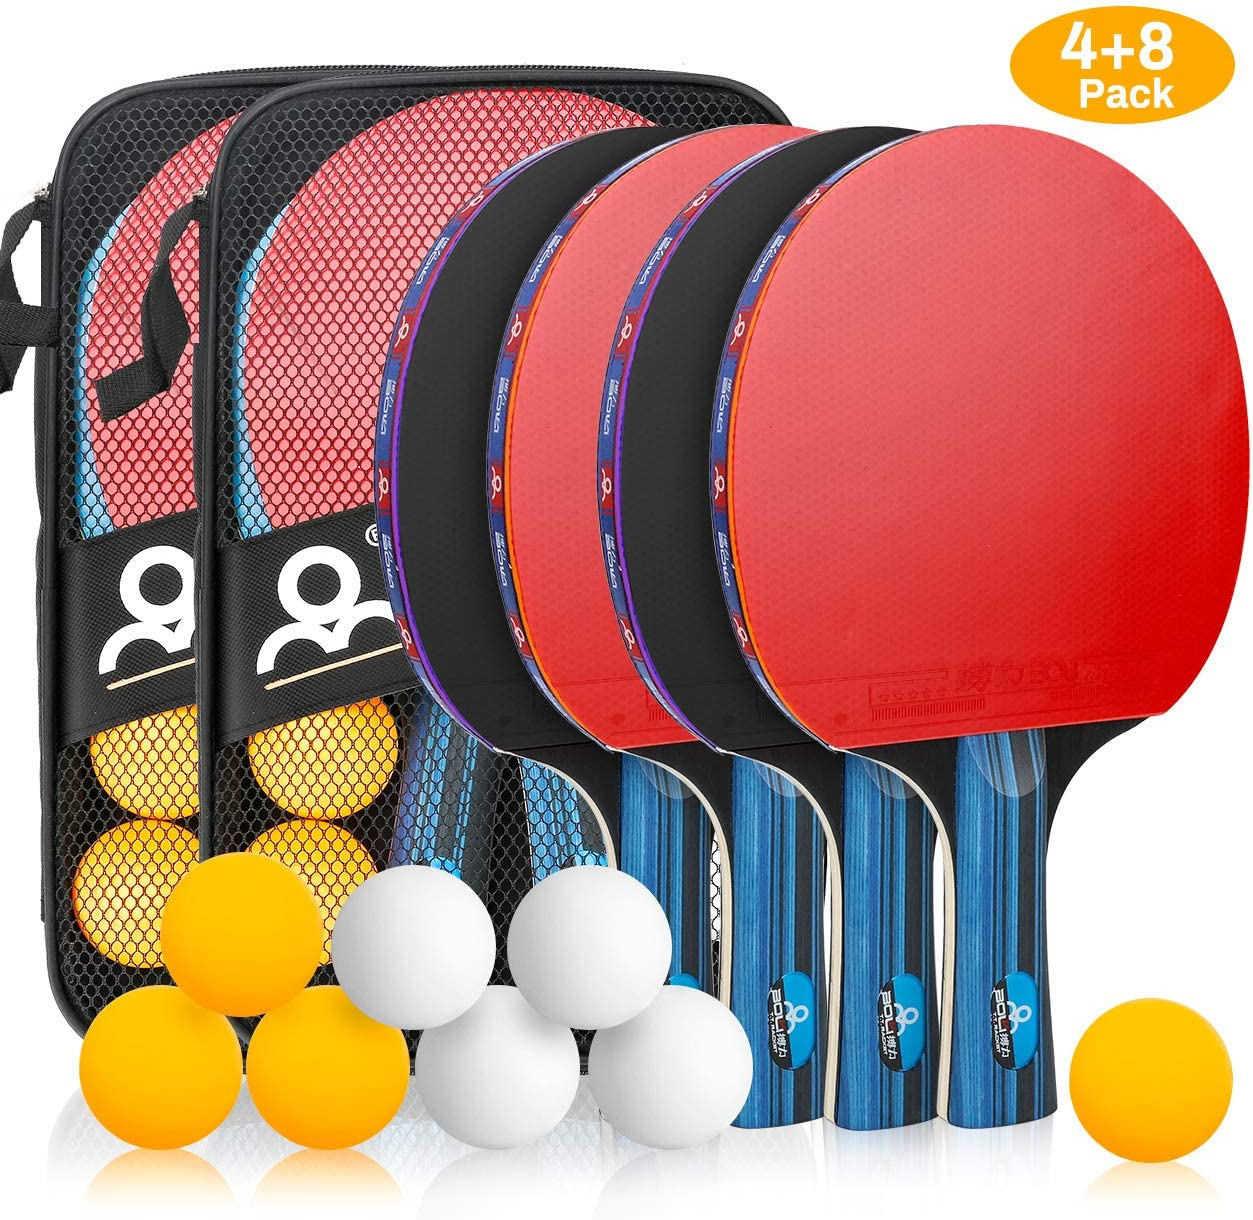 JOOLA Tour Competition Carrying Case – Ping Pong Paddle Set Includes 2 ITTF APPROVED Python Table Tennis Paddles 18 40mm 3 Star Tournament Ping Pong Balls – High Density Case with EVA Foam Lining